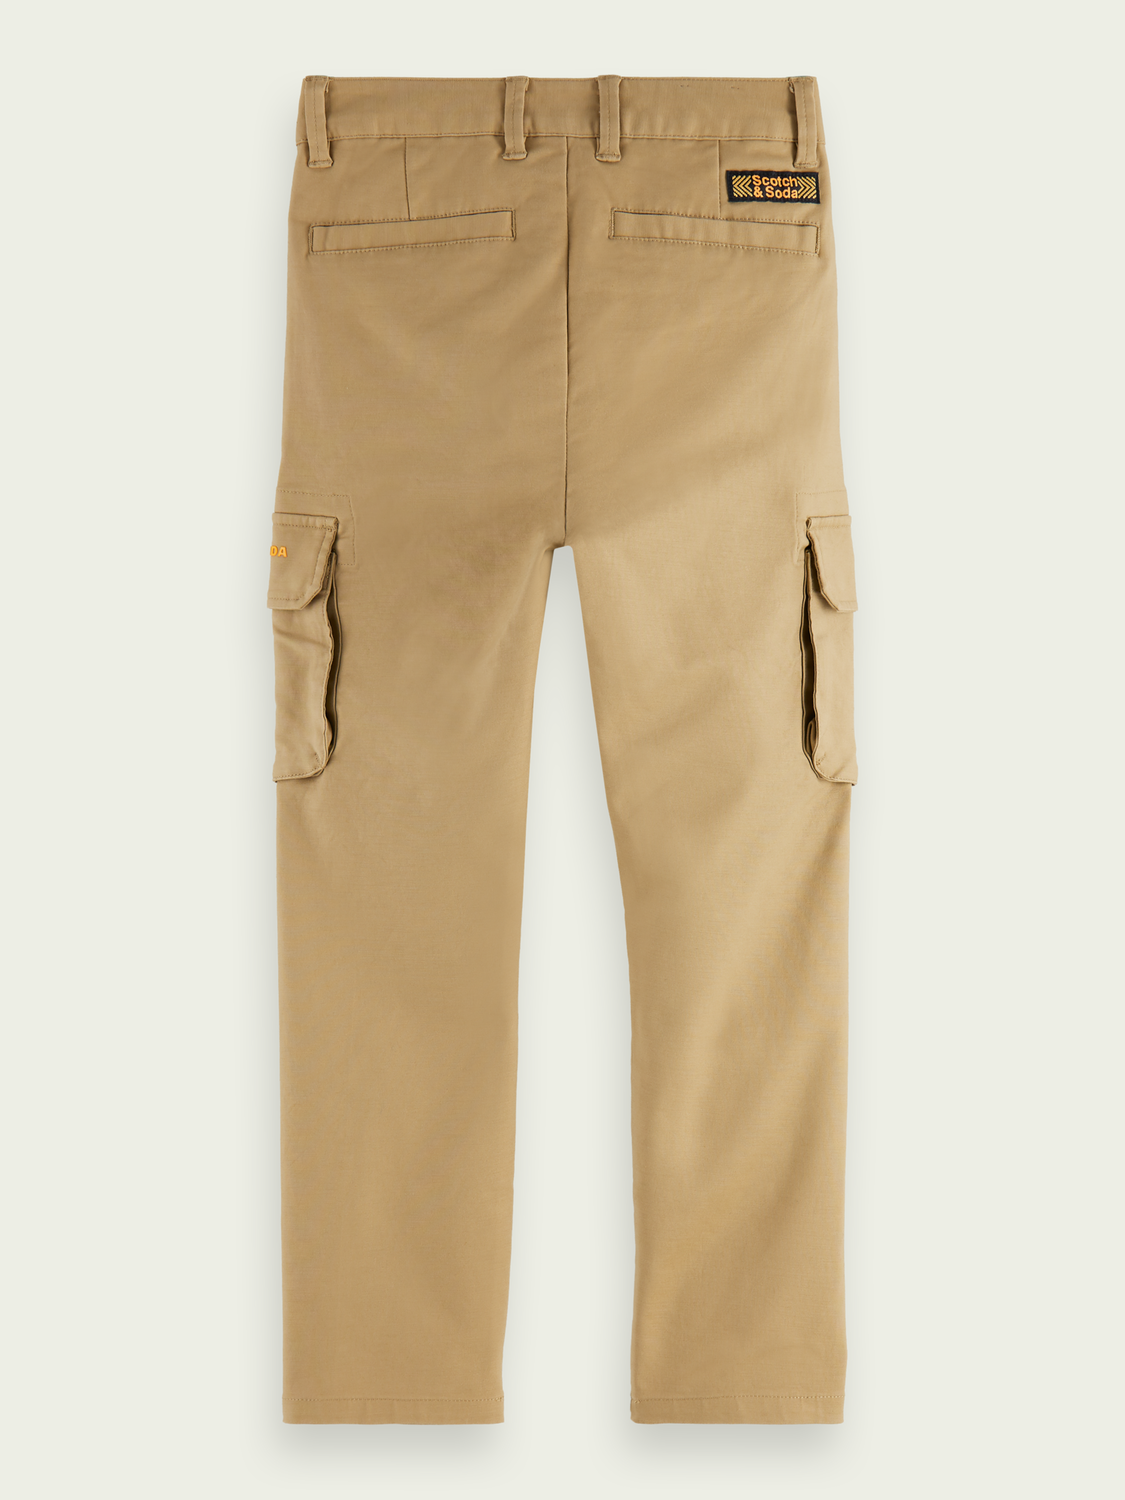 Kids Clean cargo pants | Loose tapered fit